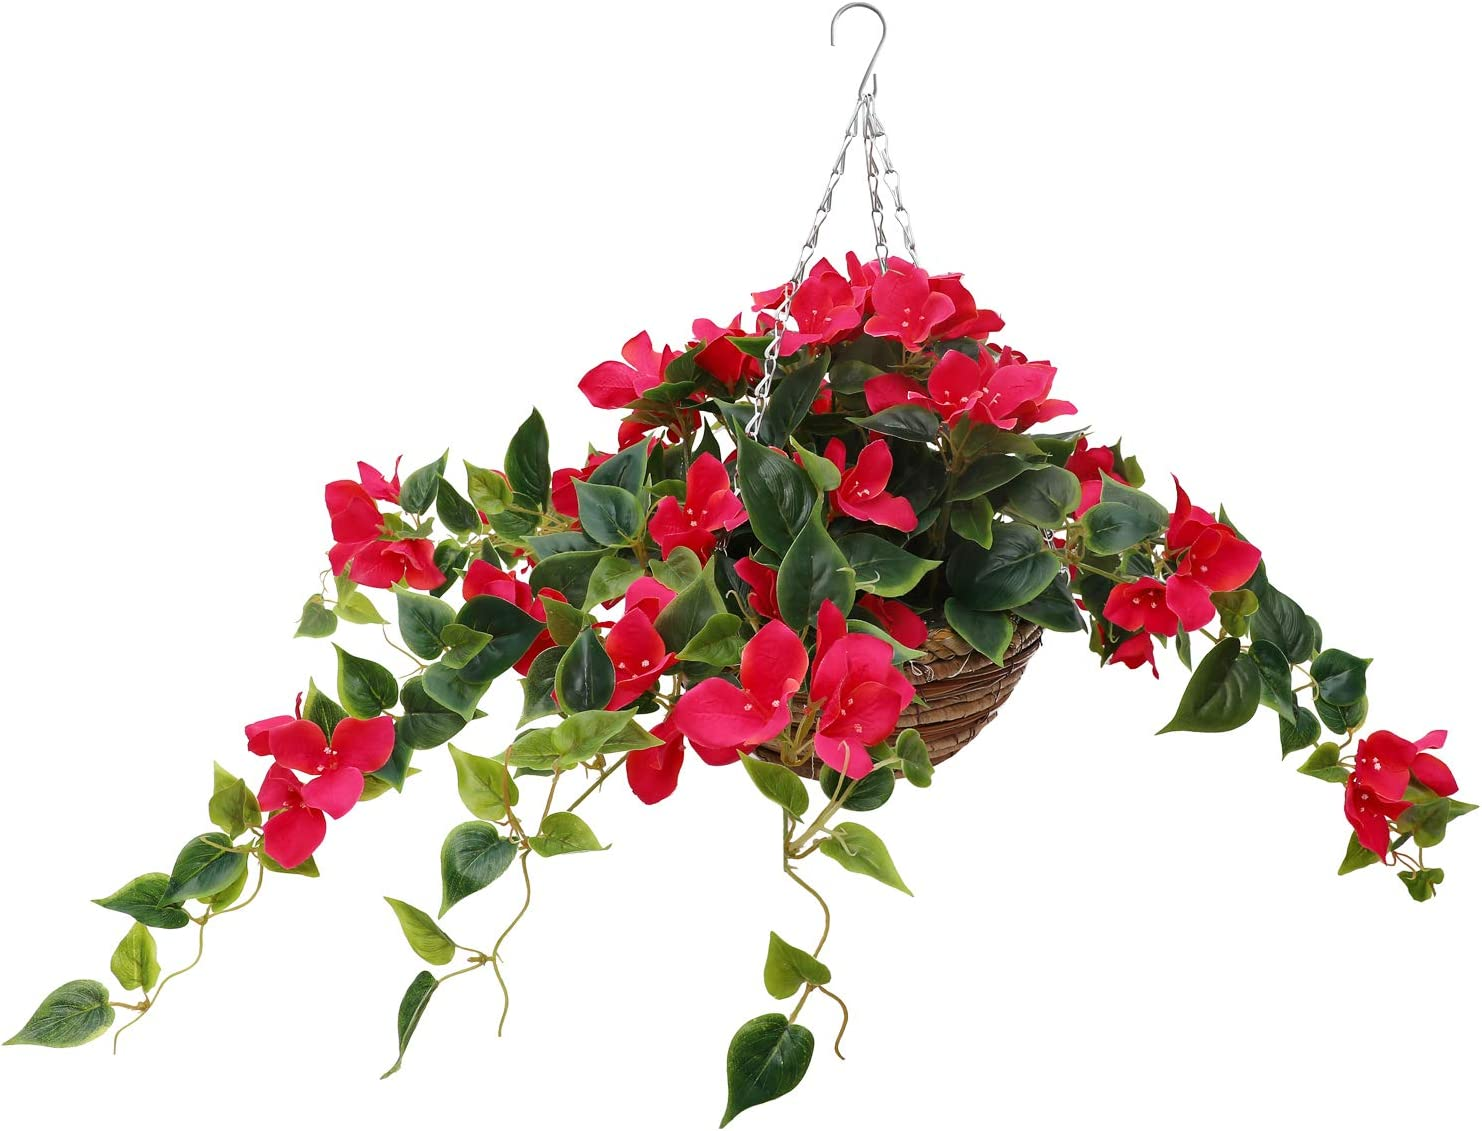 by Ricardo Hanging Planter Basket Filled with Artificial Bougainvillea Silk Flowers, Natural Looking Outdoor and Indoor Hanging Planters for Garden, Home and Patio Floral Decor, Hardware Included.